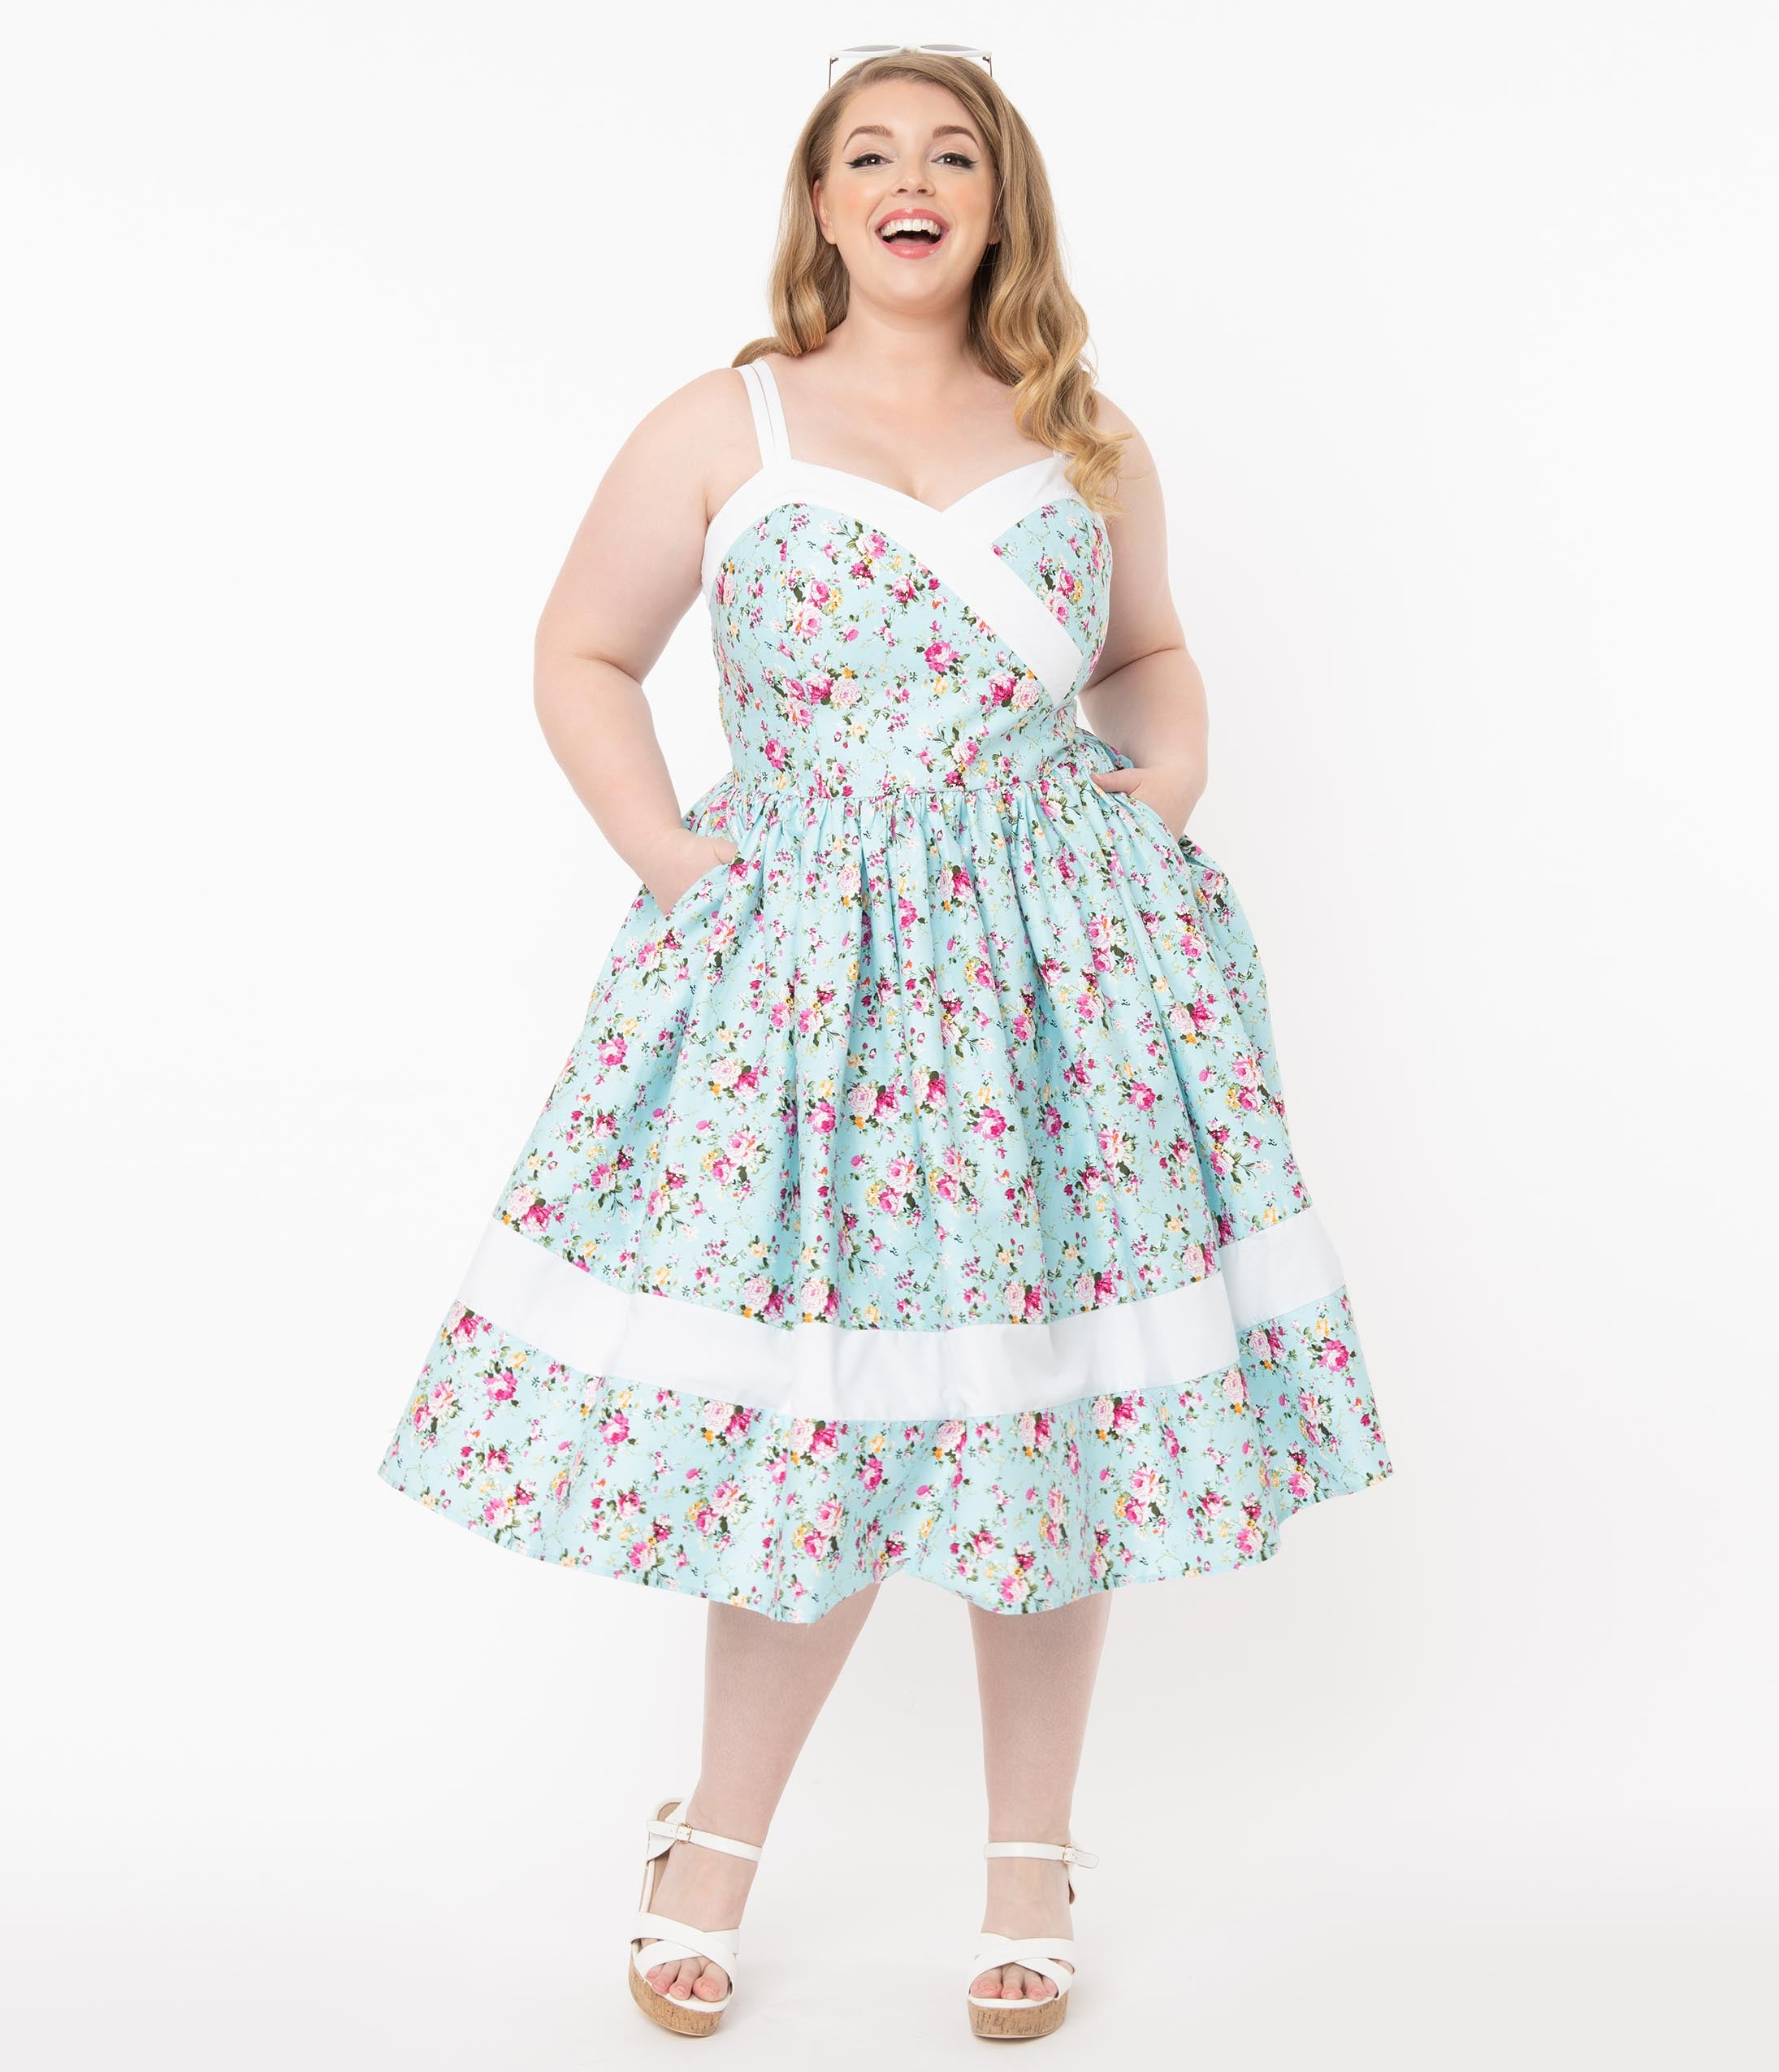 1950s Plus Size Fashion & Clothing History Unique Vintage Plus Size Light Blue  Pink Floral Print Darienne Swing Dress $78.00 AT vintagedancer.com